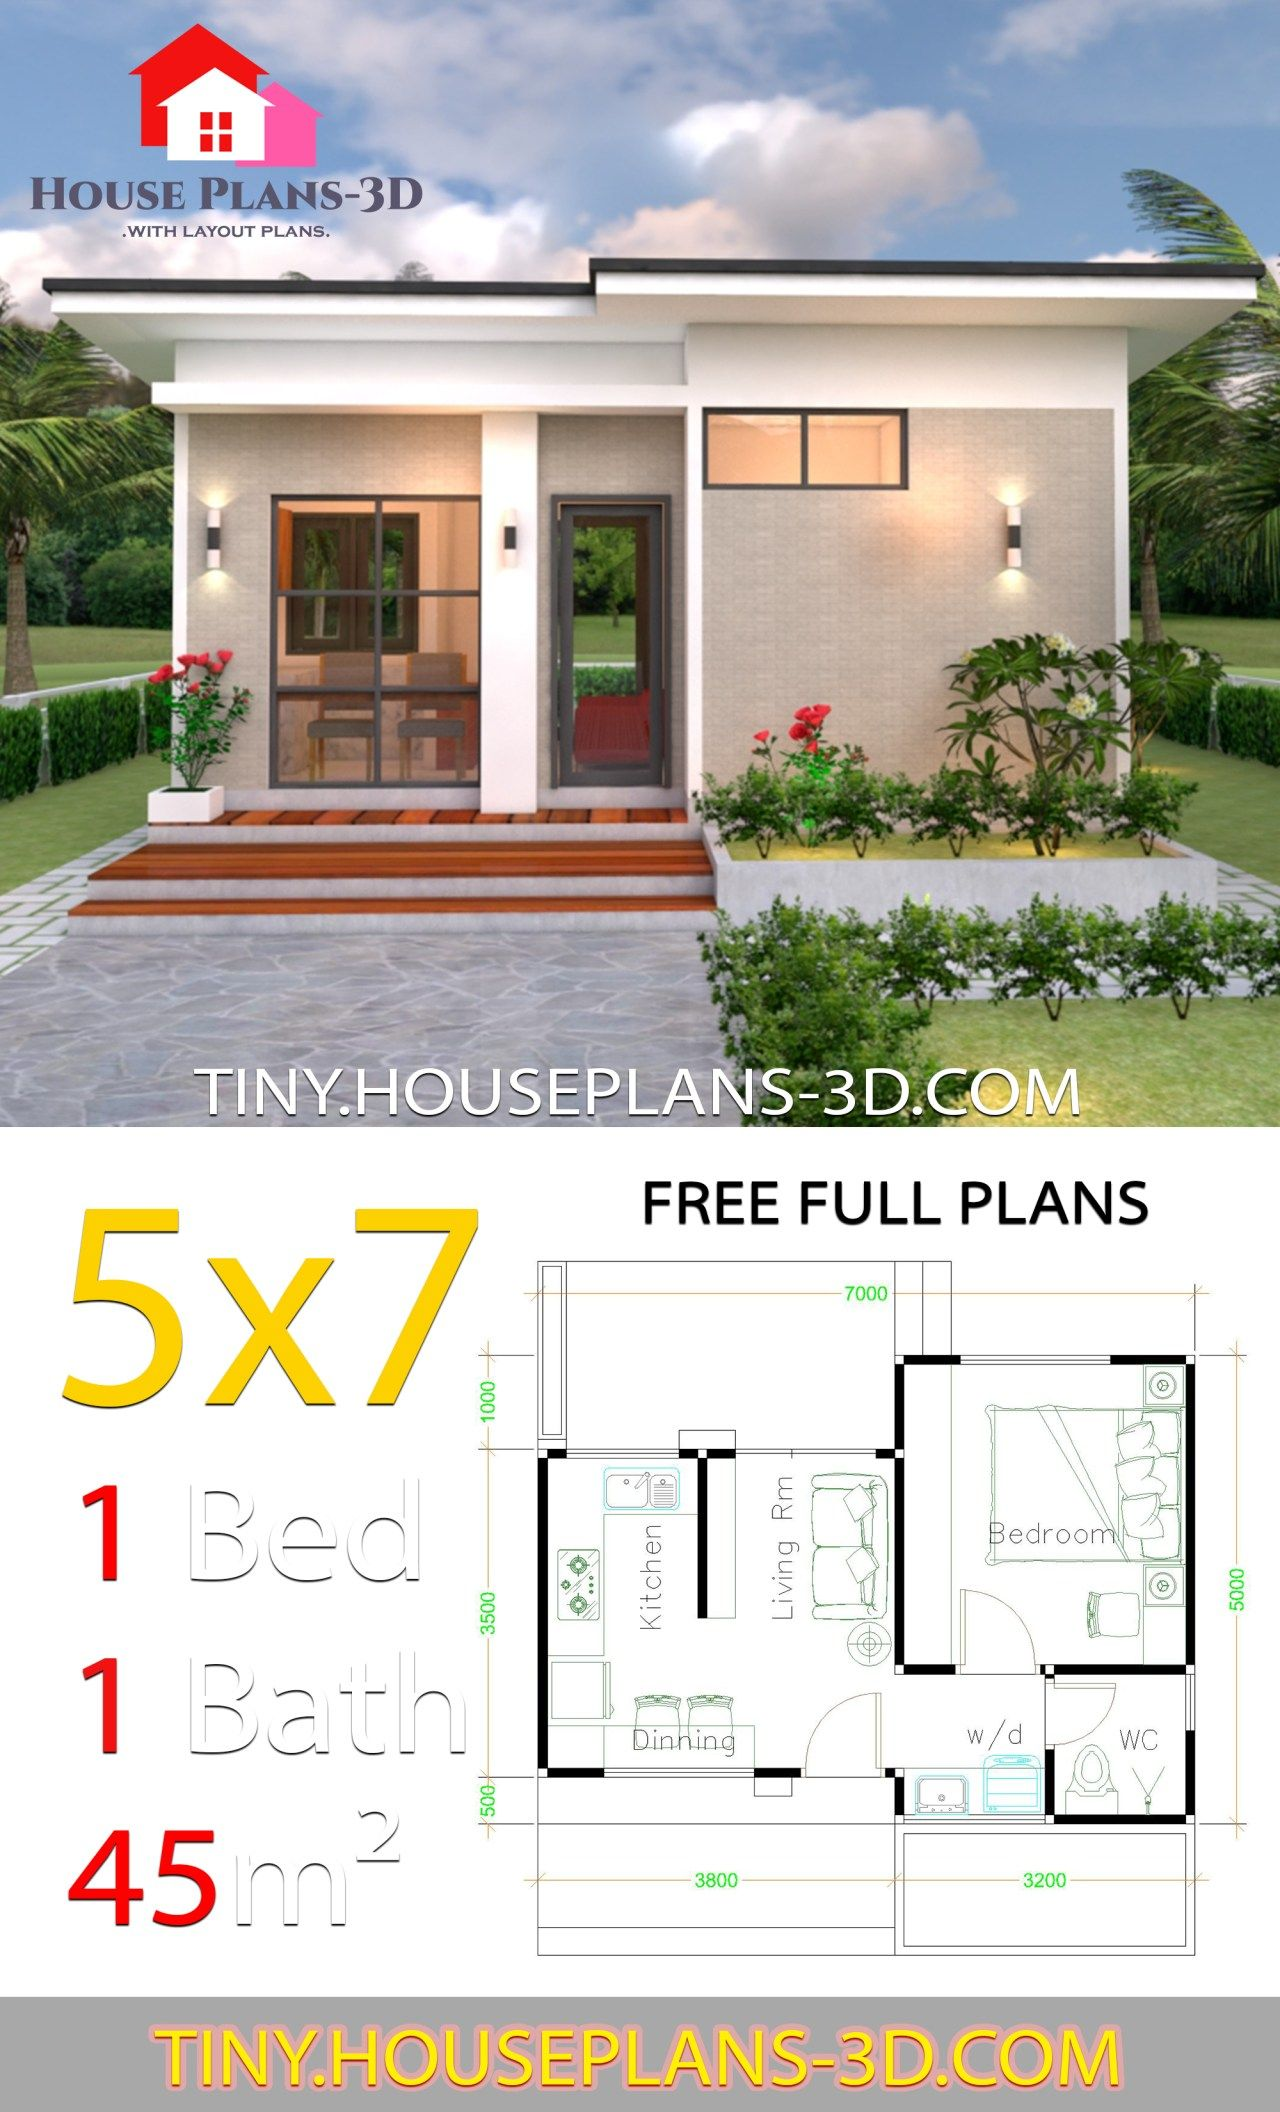 Small House Design Plans 5x7 With One Bedroom Shed Roof Tiny House Plans Small House Design Plans Home Design Plans Micro House Plans